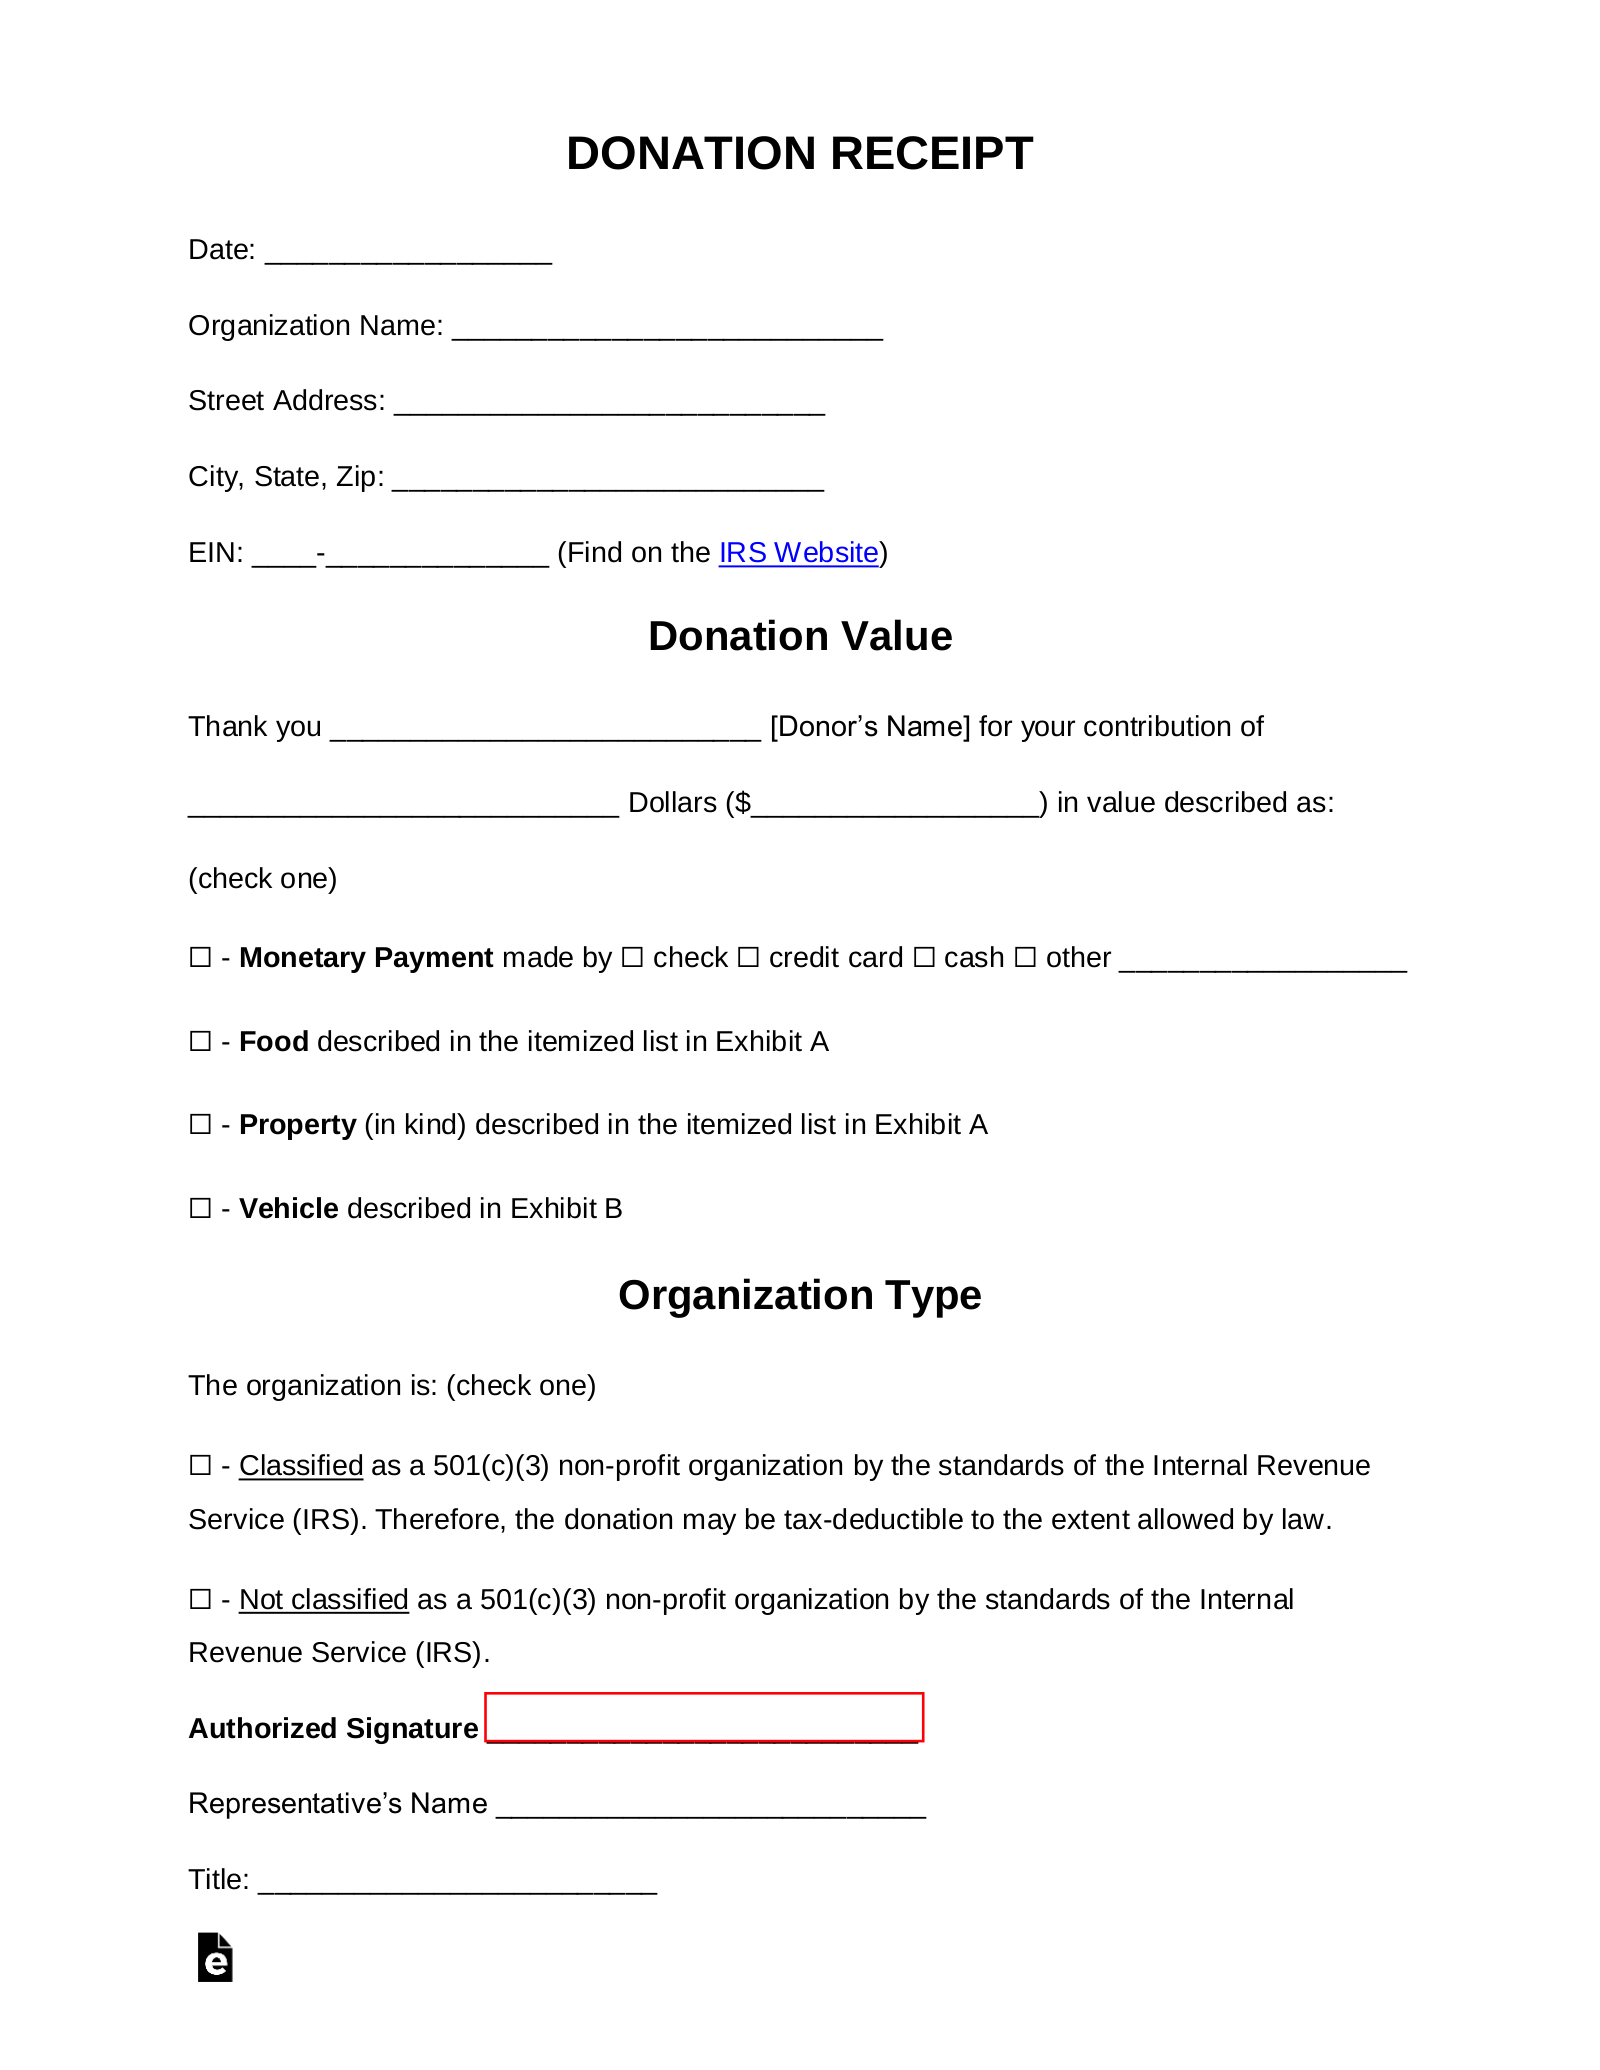 Free Donation Receipt Templates Samples Pdf Word Eforms